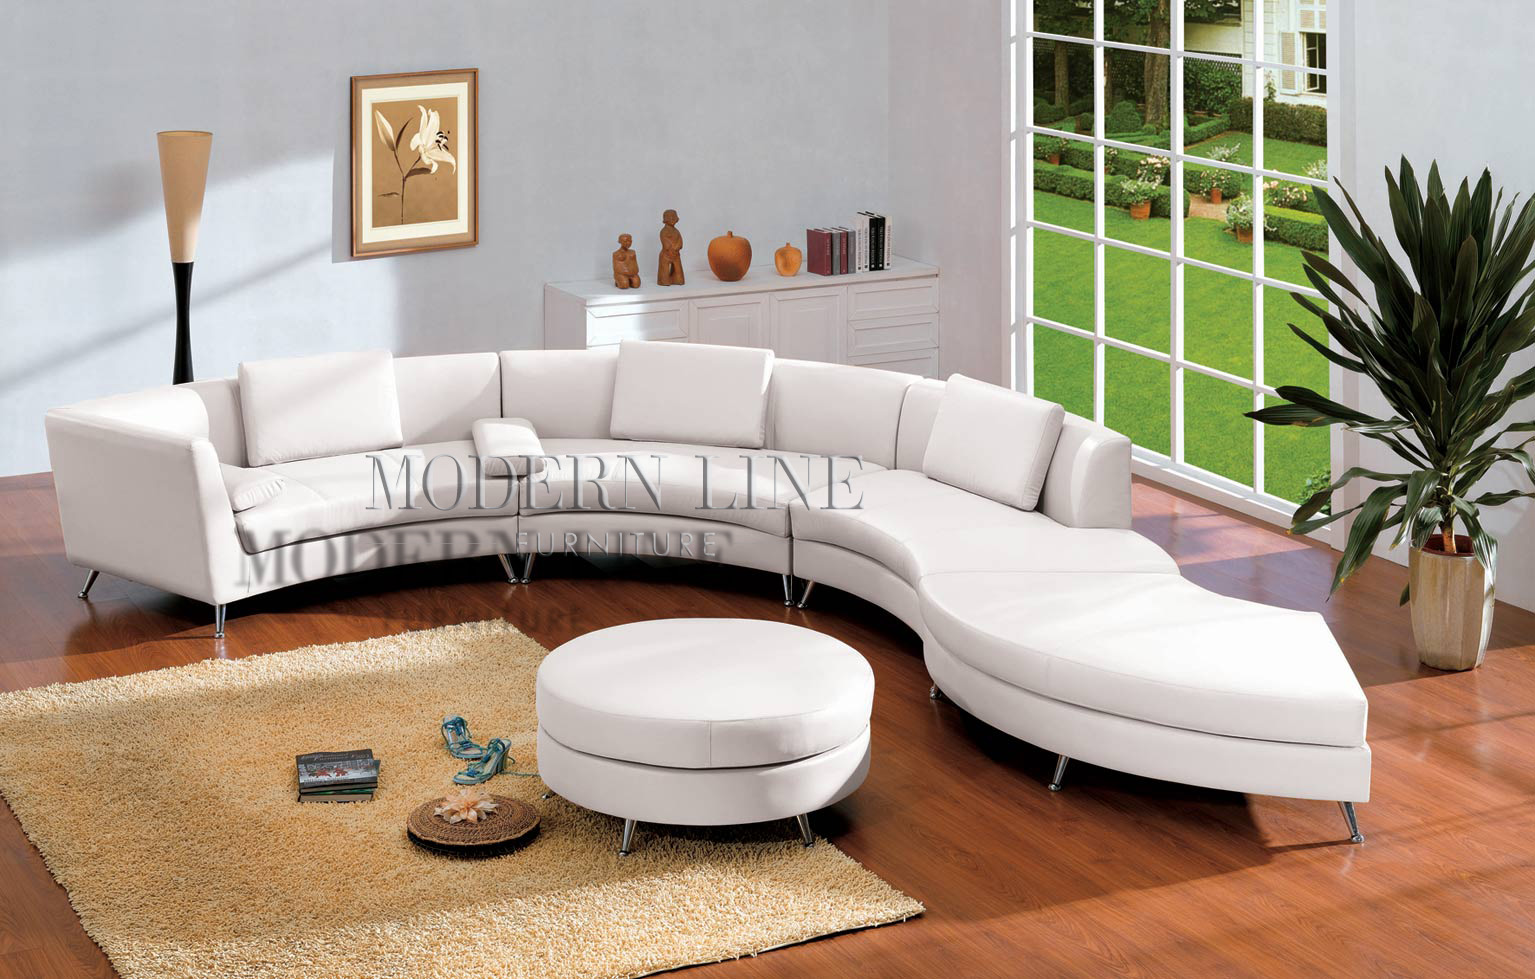 Modern Line Furniture - Commercial Furniture - Custom Made Furniture | Seating Collection | | | 2-in-1 Contemporary Furniture Design White Leather Sectional ... : white leather sectional modern - Sectionals, Sofas & Couches